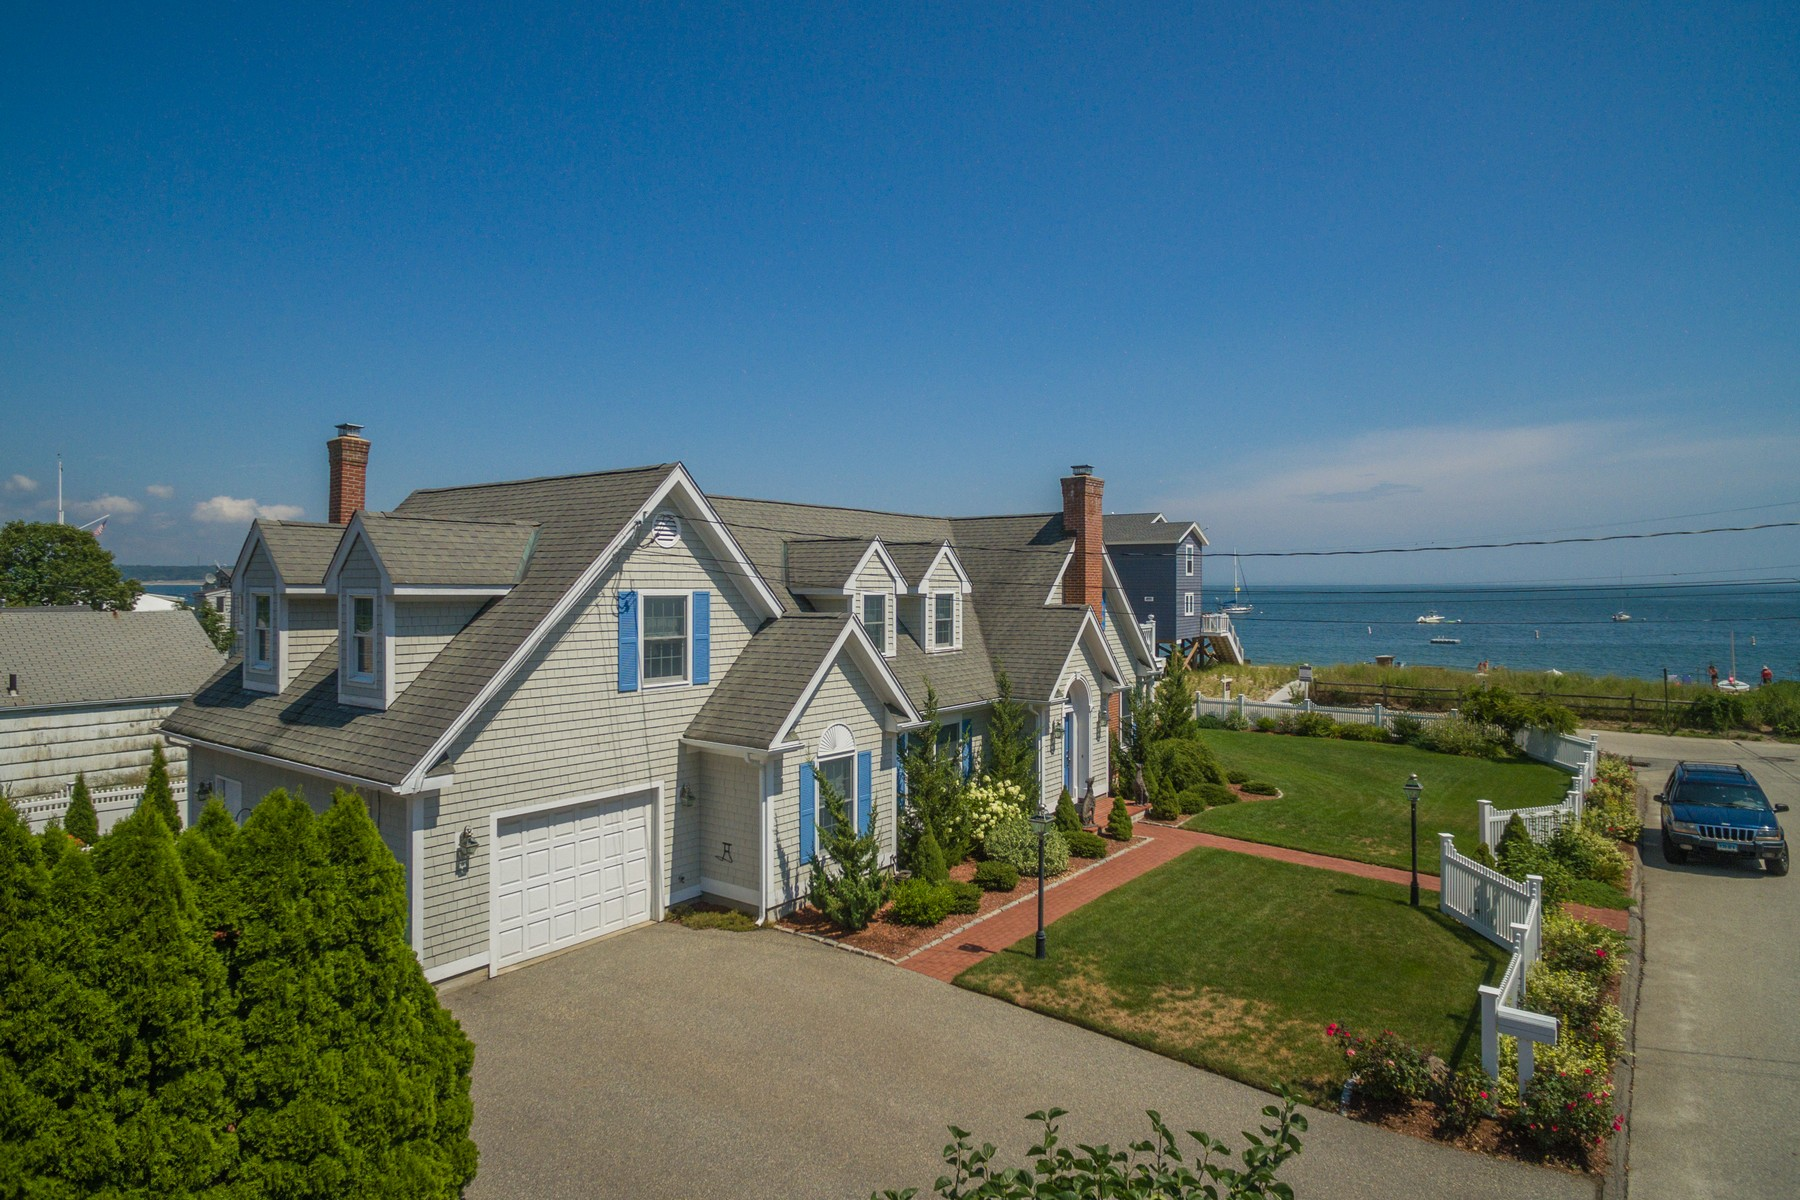 Single Family Home for Sale at Indirect Waterfont - Classic Contempoary Cape 1 South Dr East Lyme, Connecticut, 06357 United States